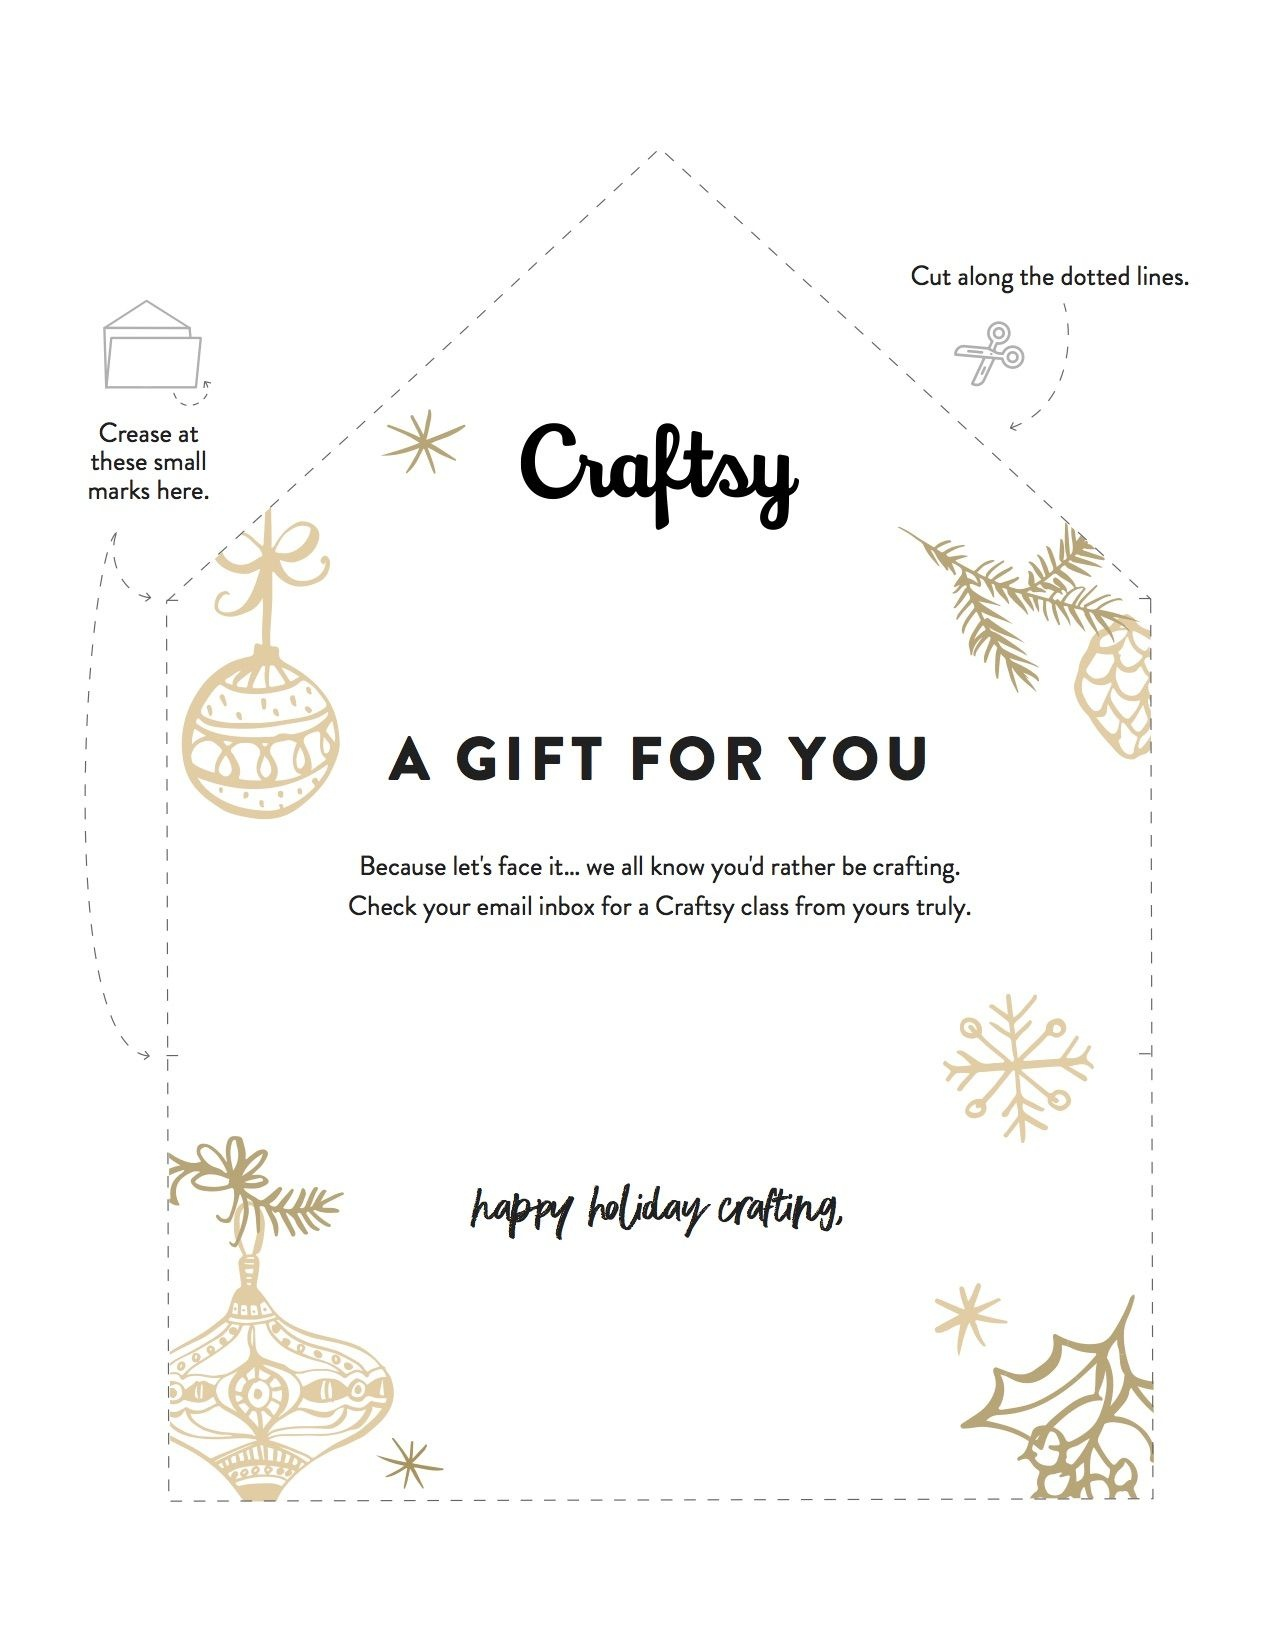 A Free Printable Gift Certificate For Craftsy Classes | Printables - Free Printable Xmas Gift Certificates